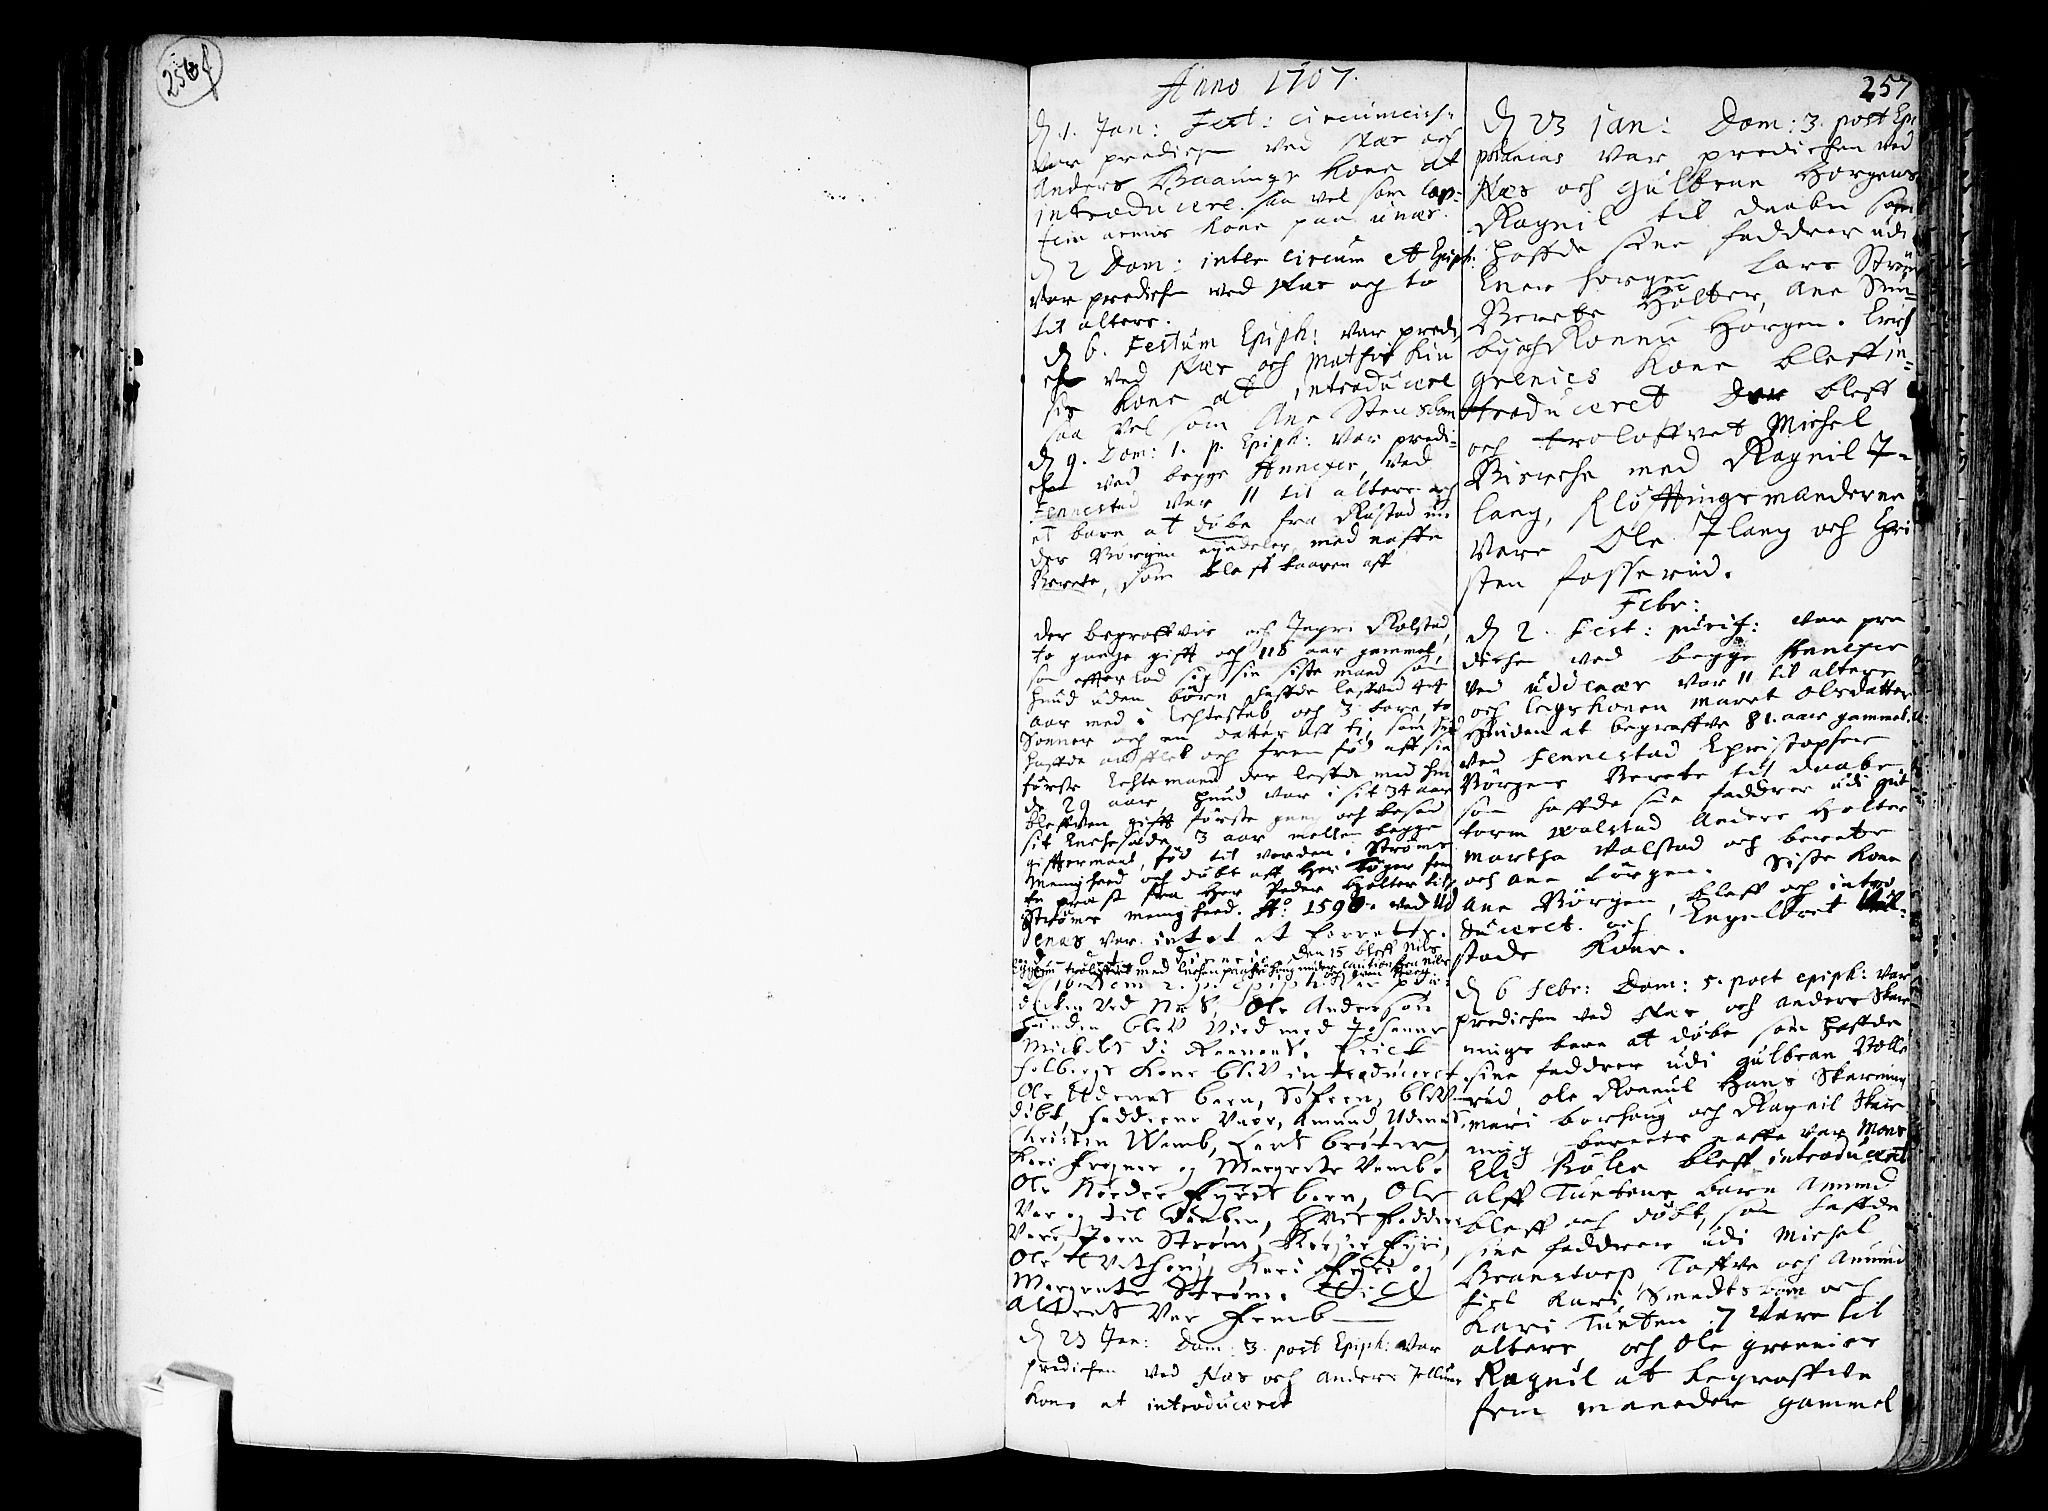 SAO, Nes prestekontor Kirkebøker, F/Fa/L0001: Parish register (official) no. I 1, 1689-1716, p. 257